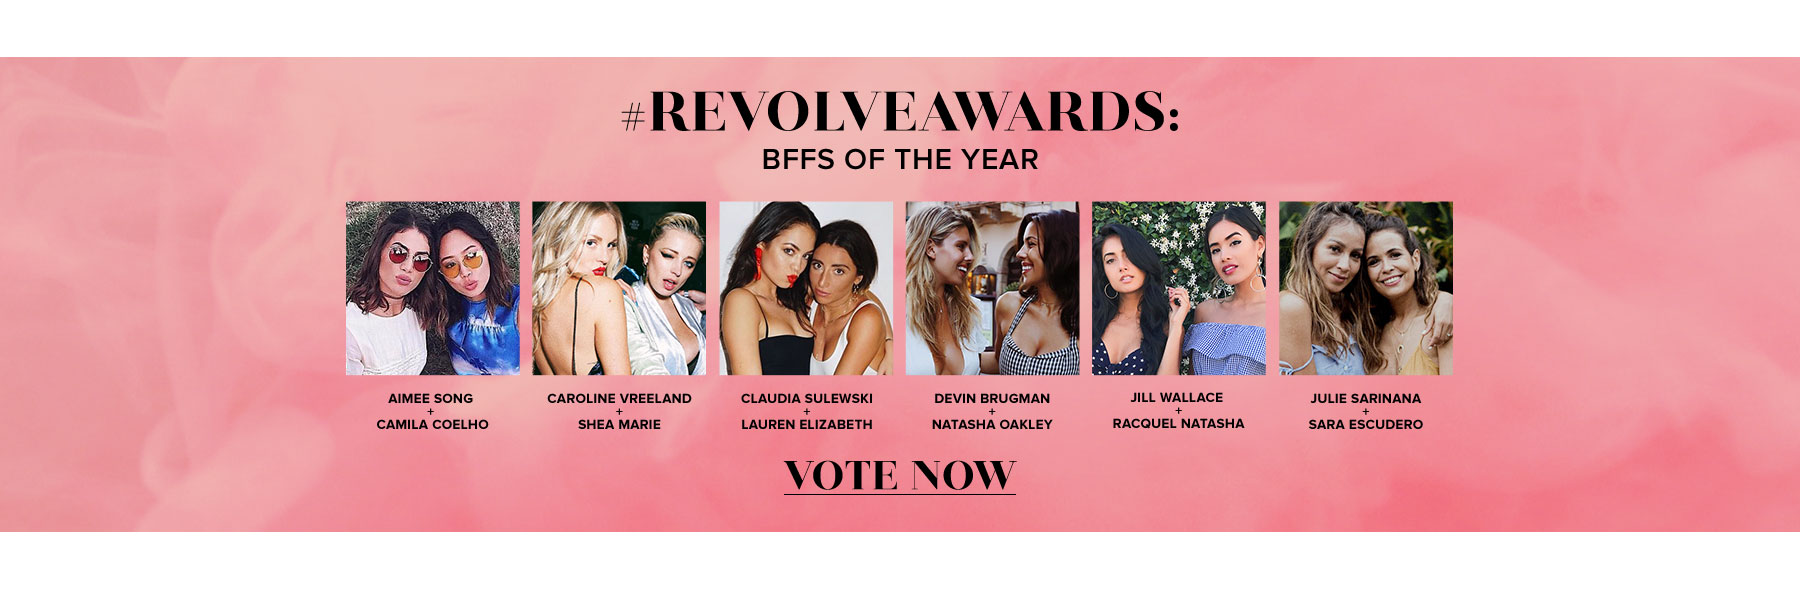 REVOLVEAWARDS. BFFS of the Year. Vote now!